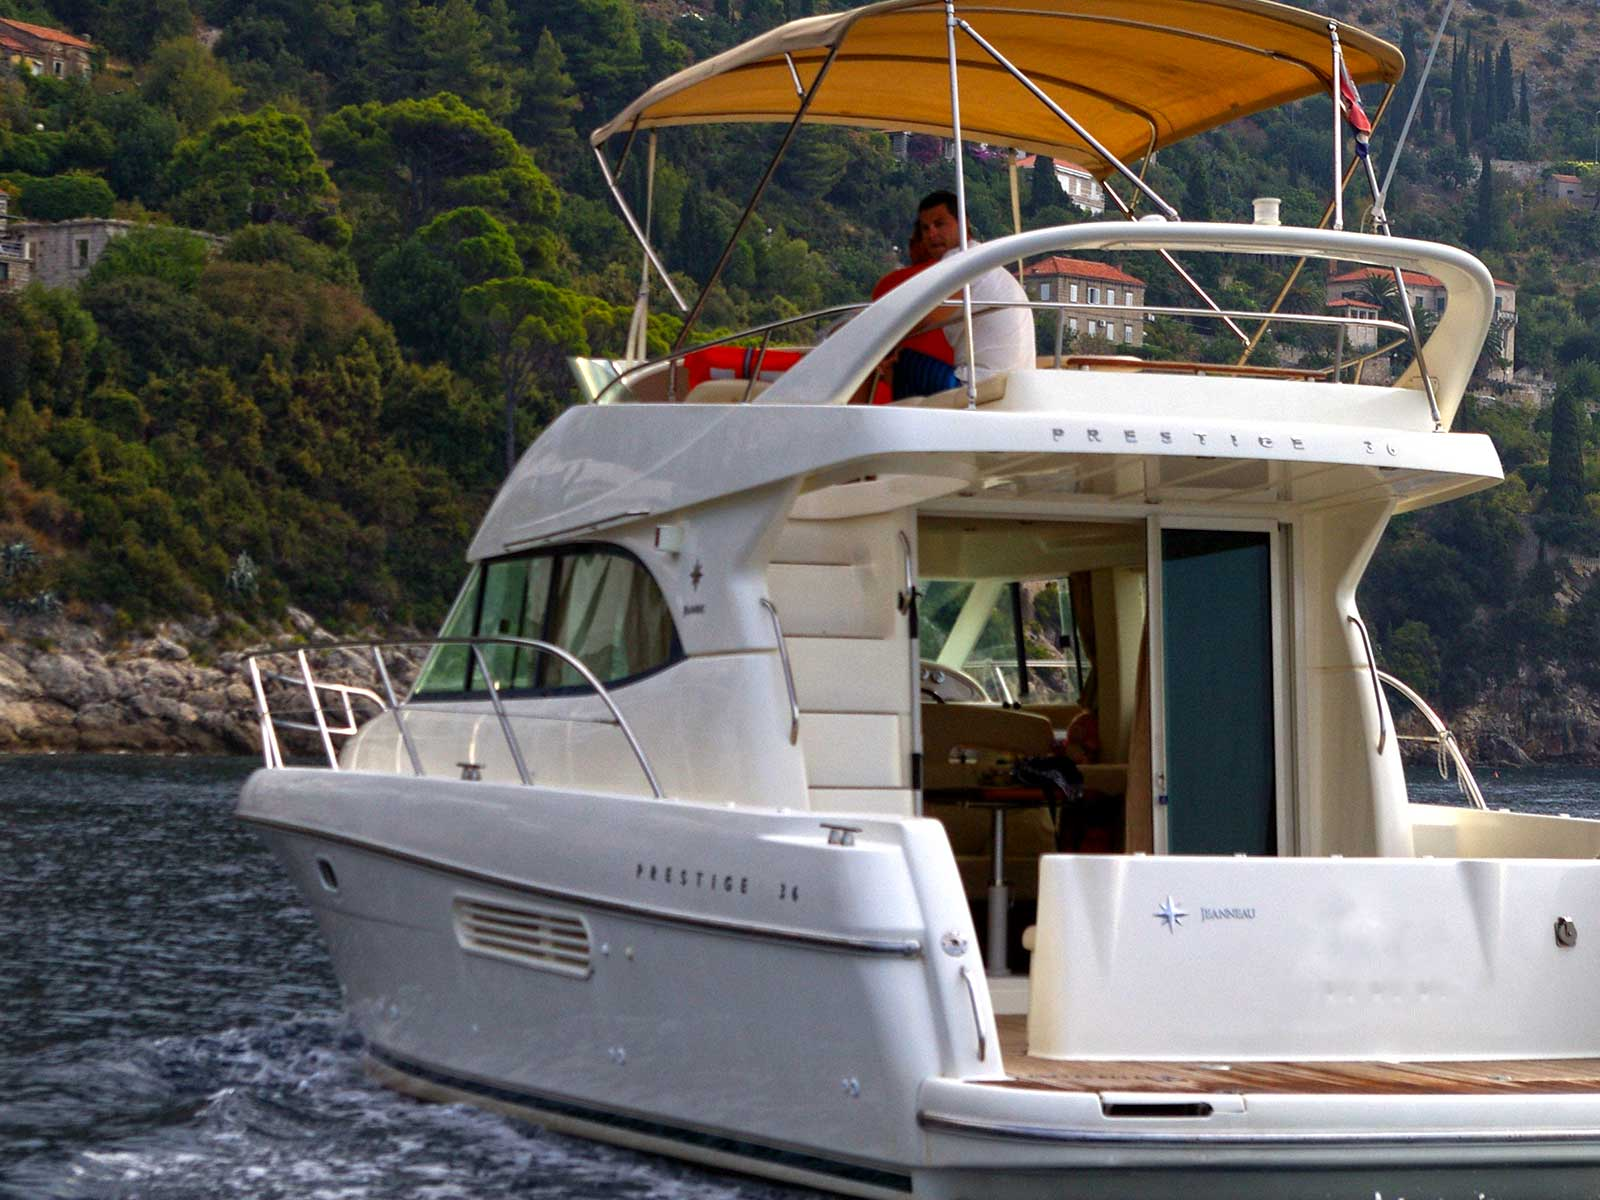 -images-excursions-elaphite-islands-speed-boat-excursion--a-motor-yacht-jeanneu-prestige-36.jpg